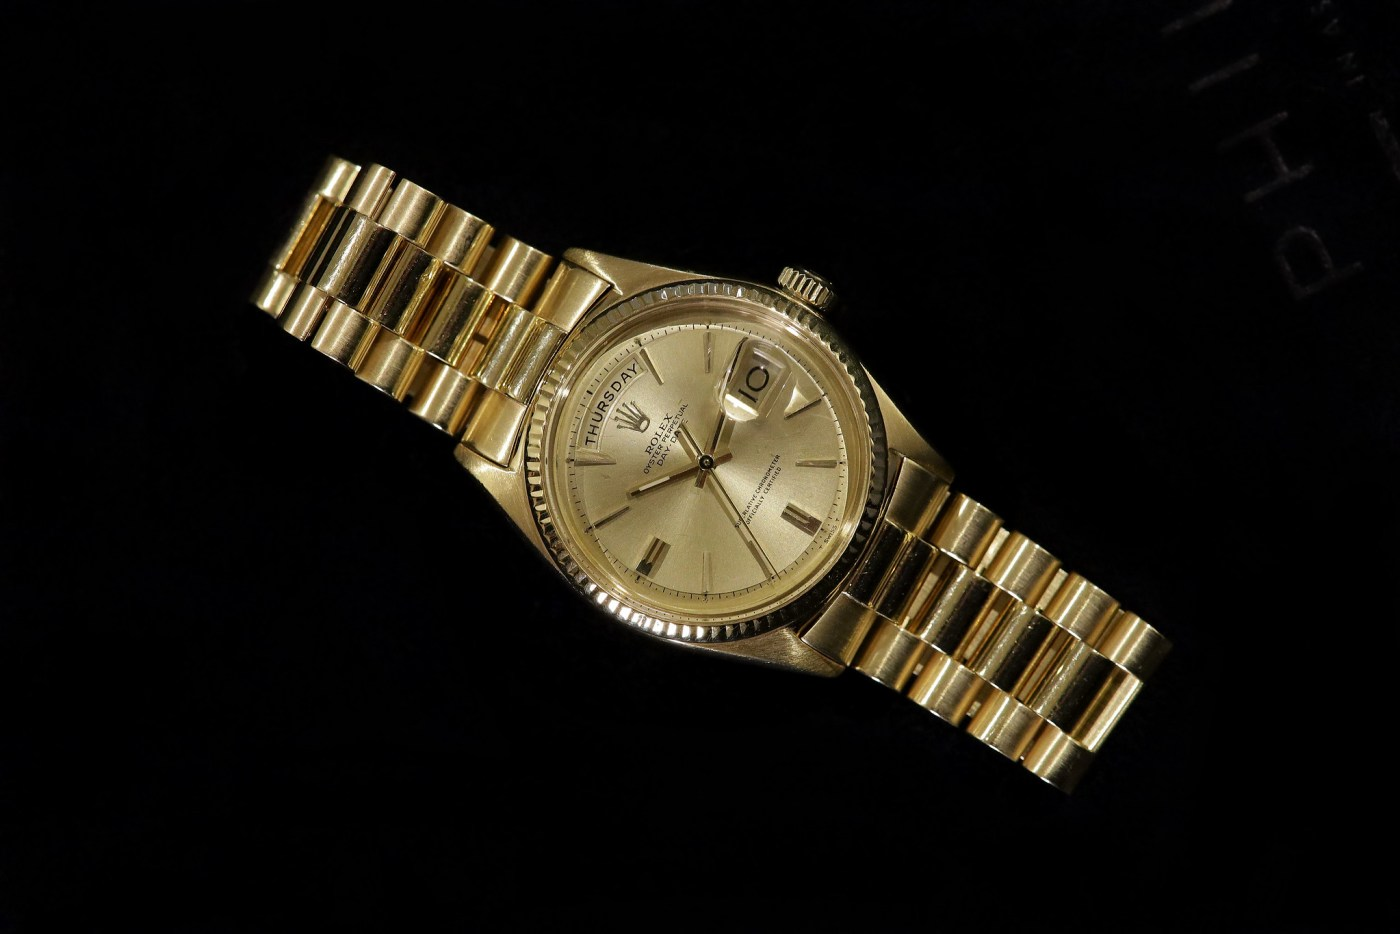 Jack Nicklaus 1967 Yellow Gold Rolex Day-Date Ref. 1803 flat angled